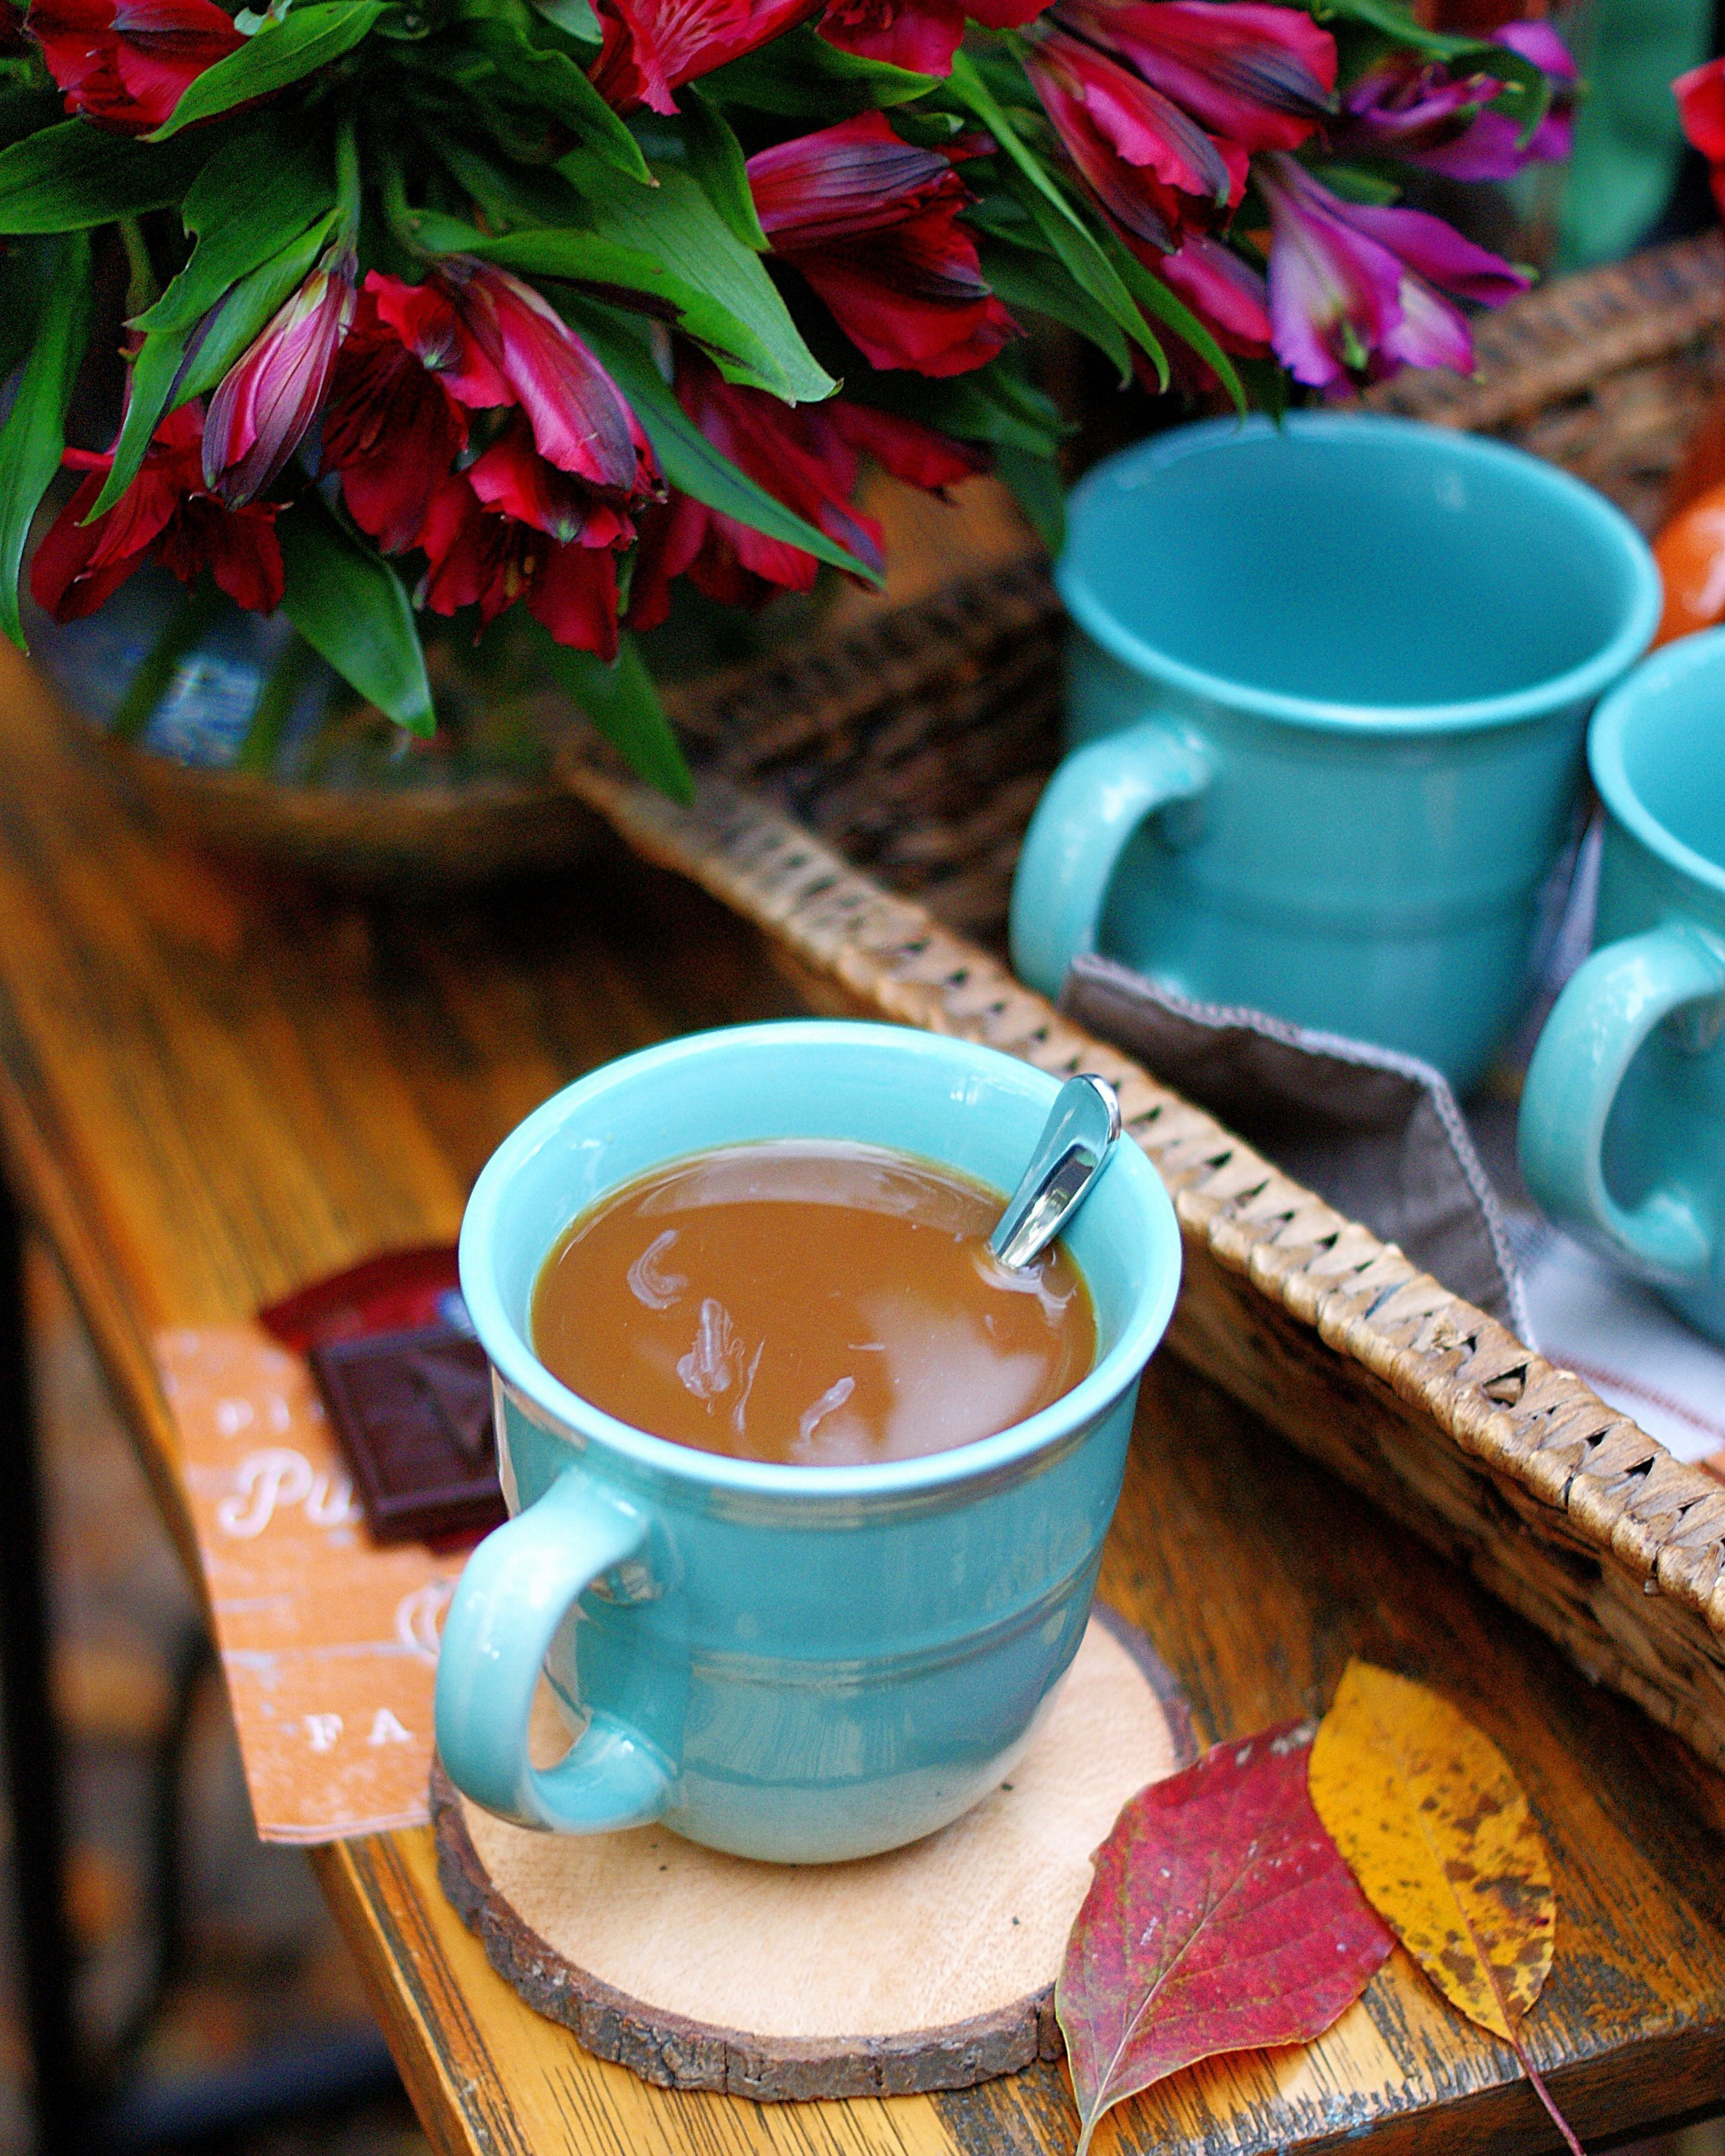 A cozy cup of coffee with fall leaves and chocolate square.